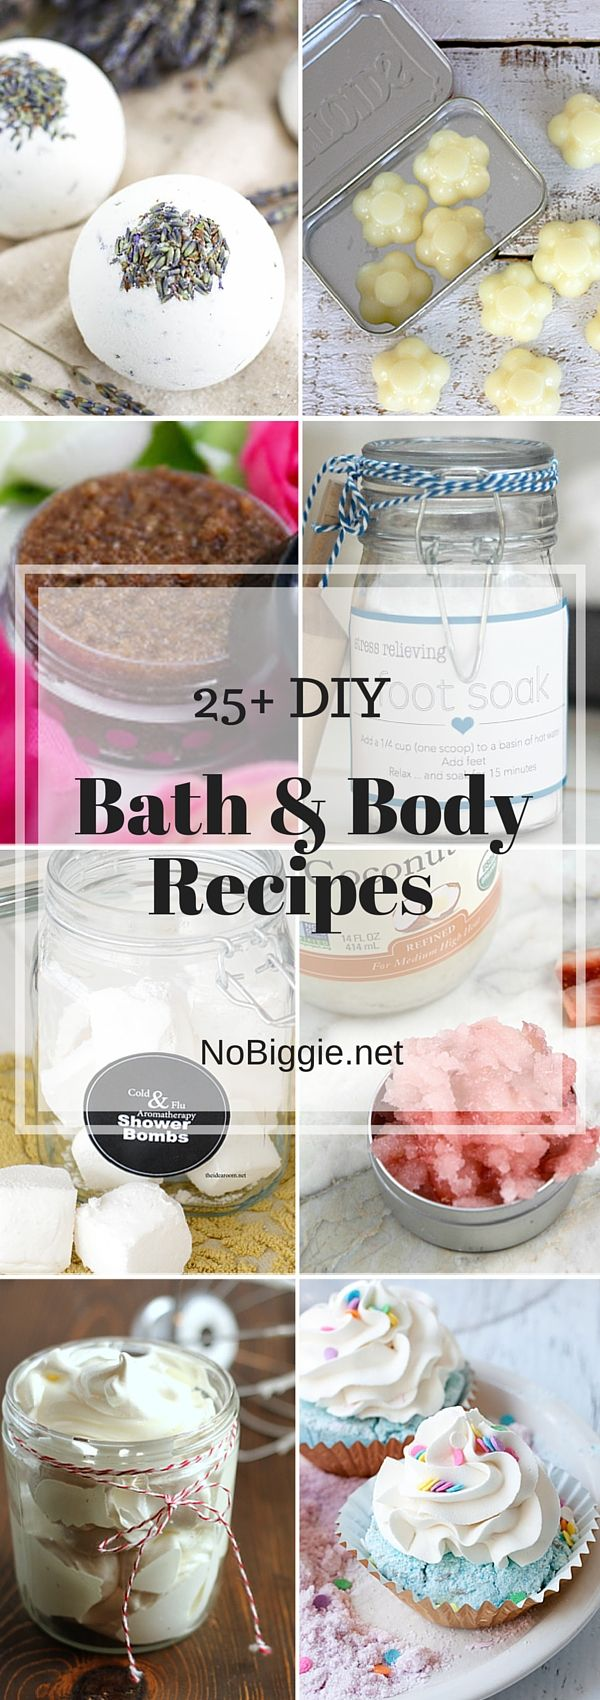 25+ Bath & Body Recipes | NoBiggie.net